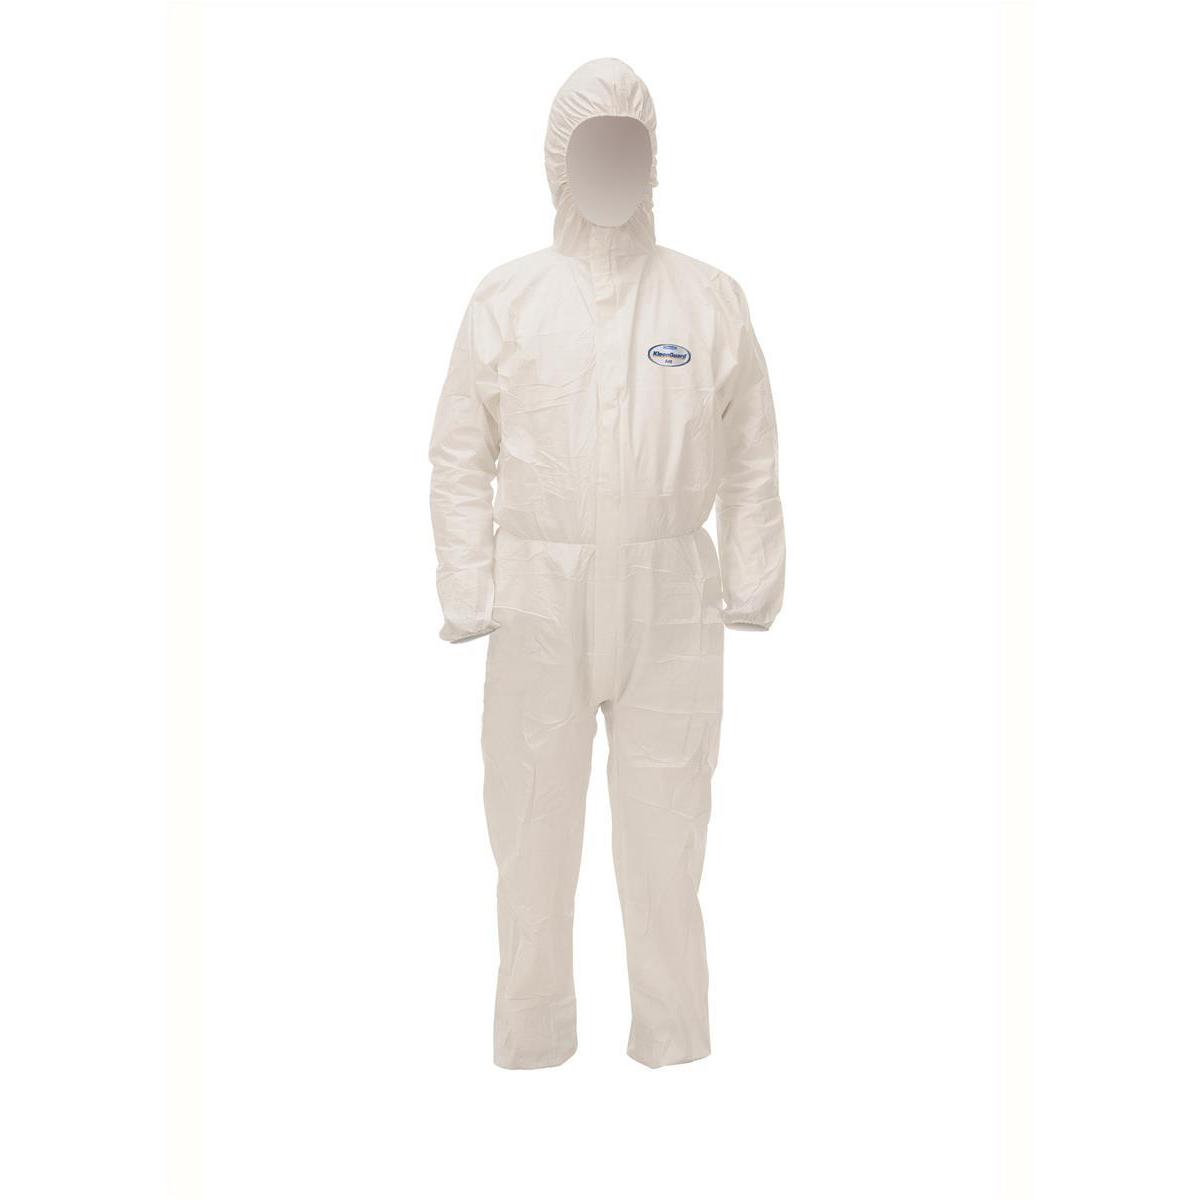 Kleenguard A40 Coverall Film Laminate Fabric Particle-resistant Anti-static EN 1149-1 Large Ref 97920